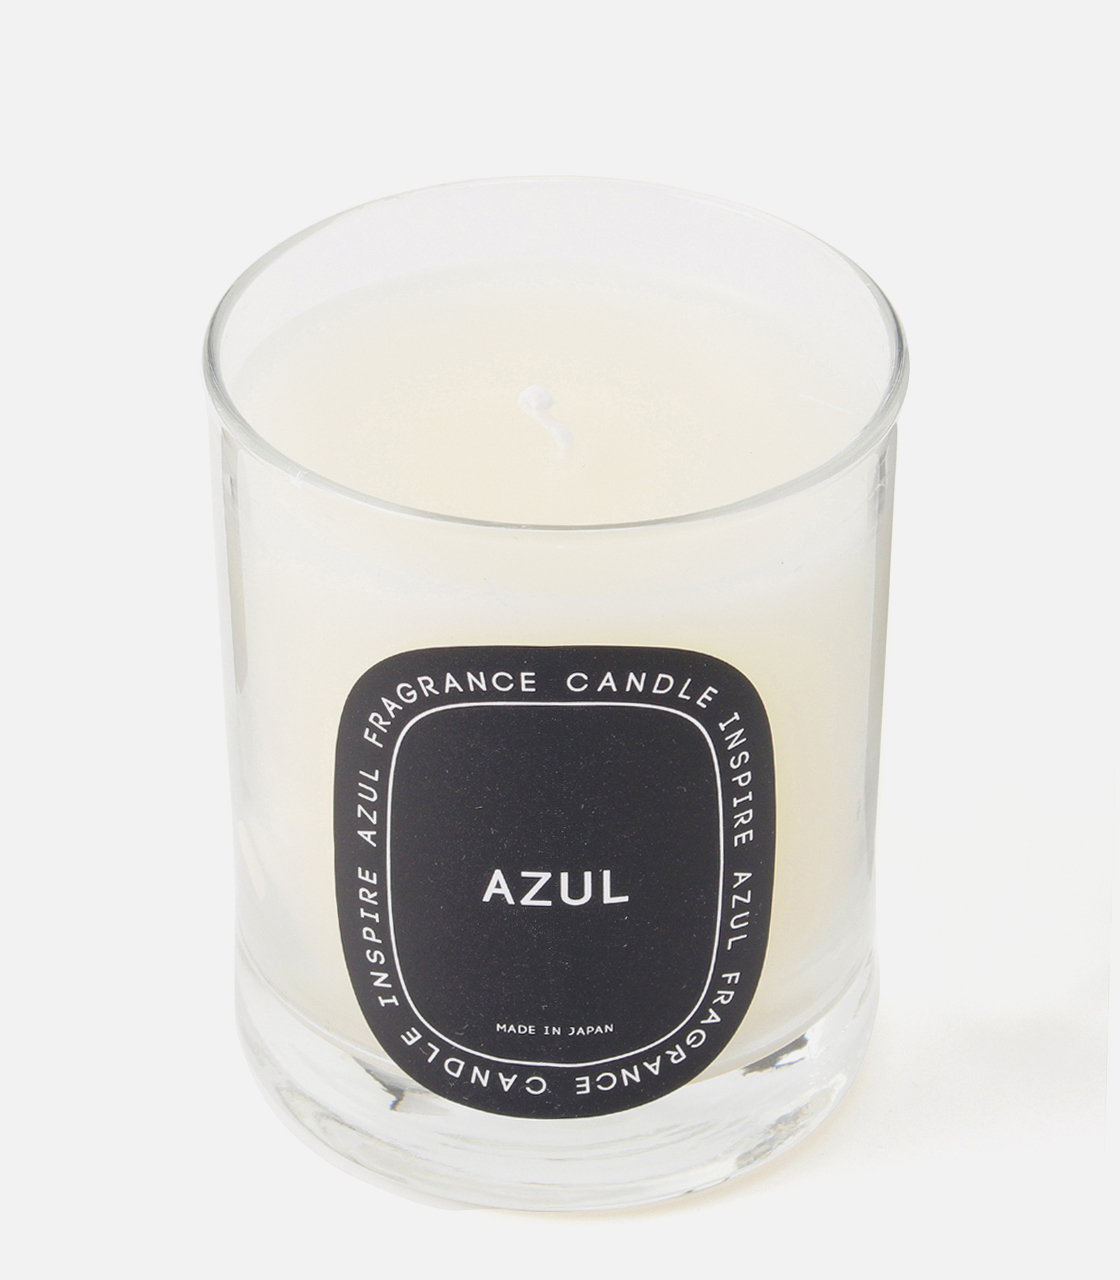 AZUL CANDLE/アズールキャンドル 詳細画像 BLK 3